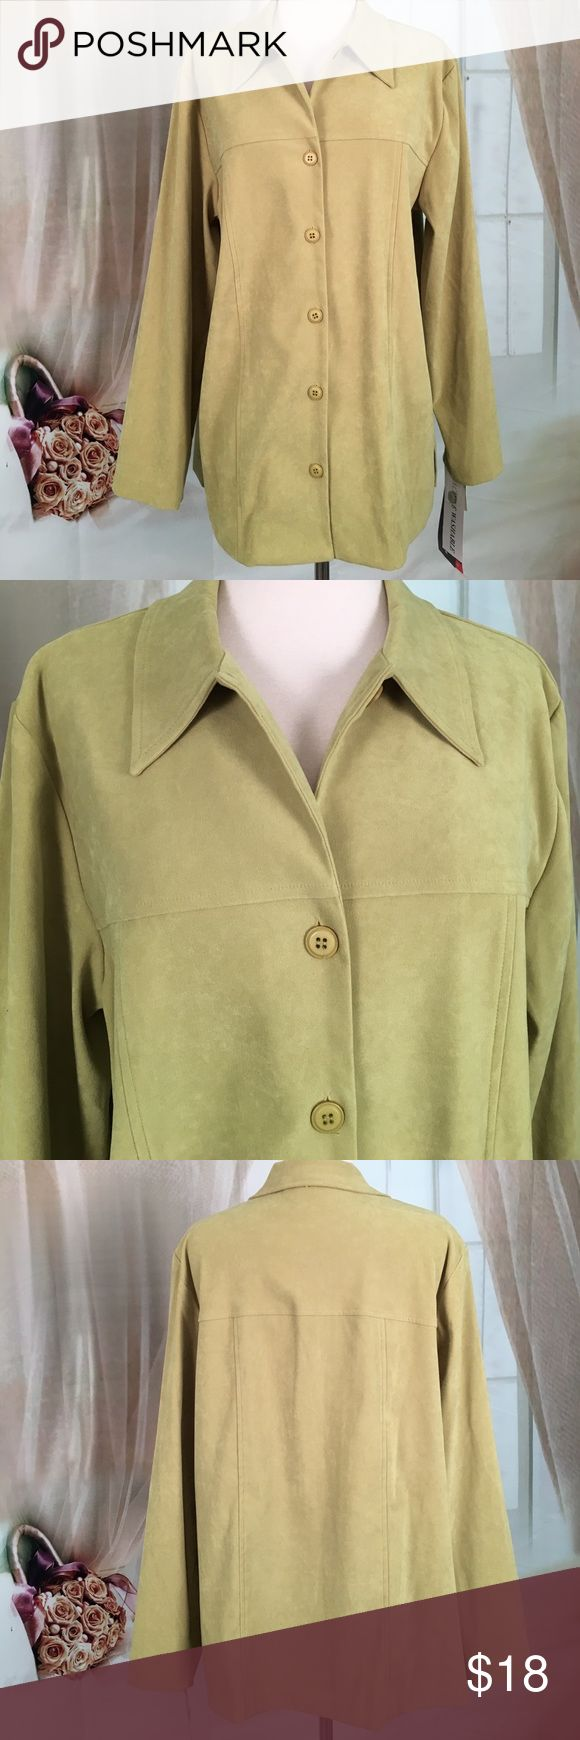 🆕 Sag Harbor Green Long Sleeved Blouse Beautiful green longsleeved blouse. Feels like suede, very soft. Could also be used as a blazer or a light jacket. 97% polyester and 3% spandex.  New with tags.  Size 14.  Bust measured flat armpit to armpit 22 inches in length 29 inches.  TB432 LOC-2 Sag Harbor Tops Blouses